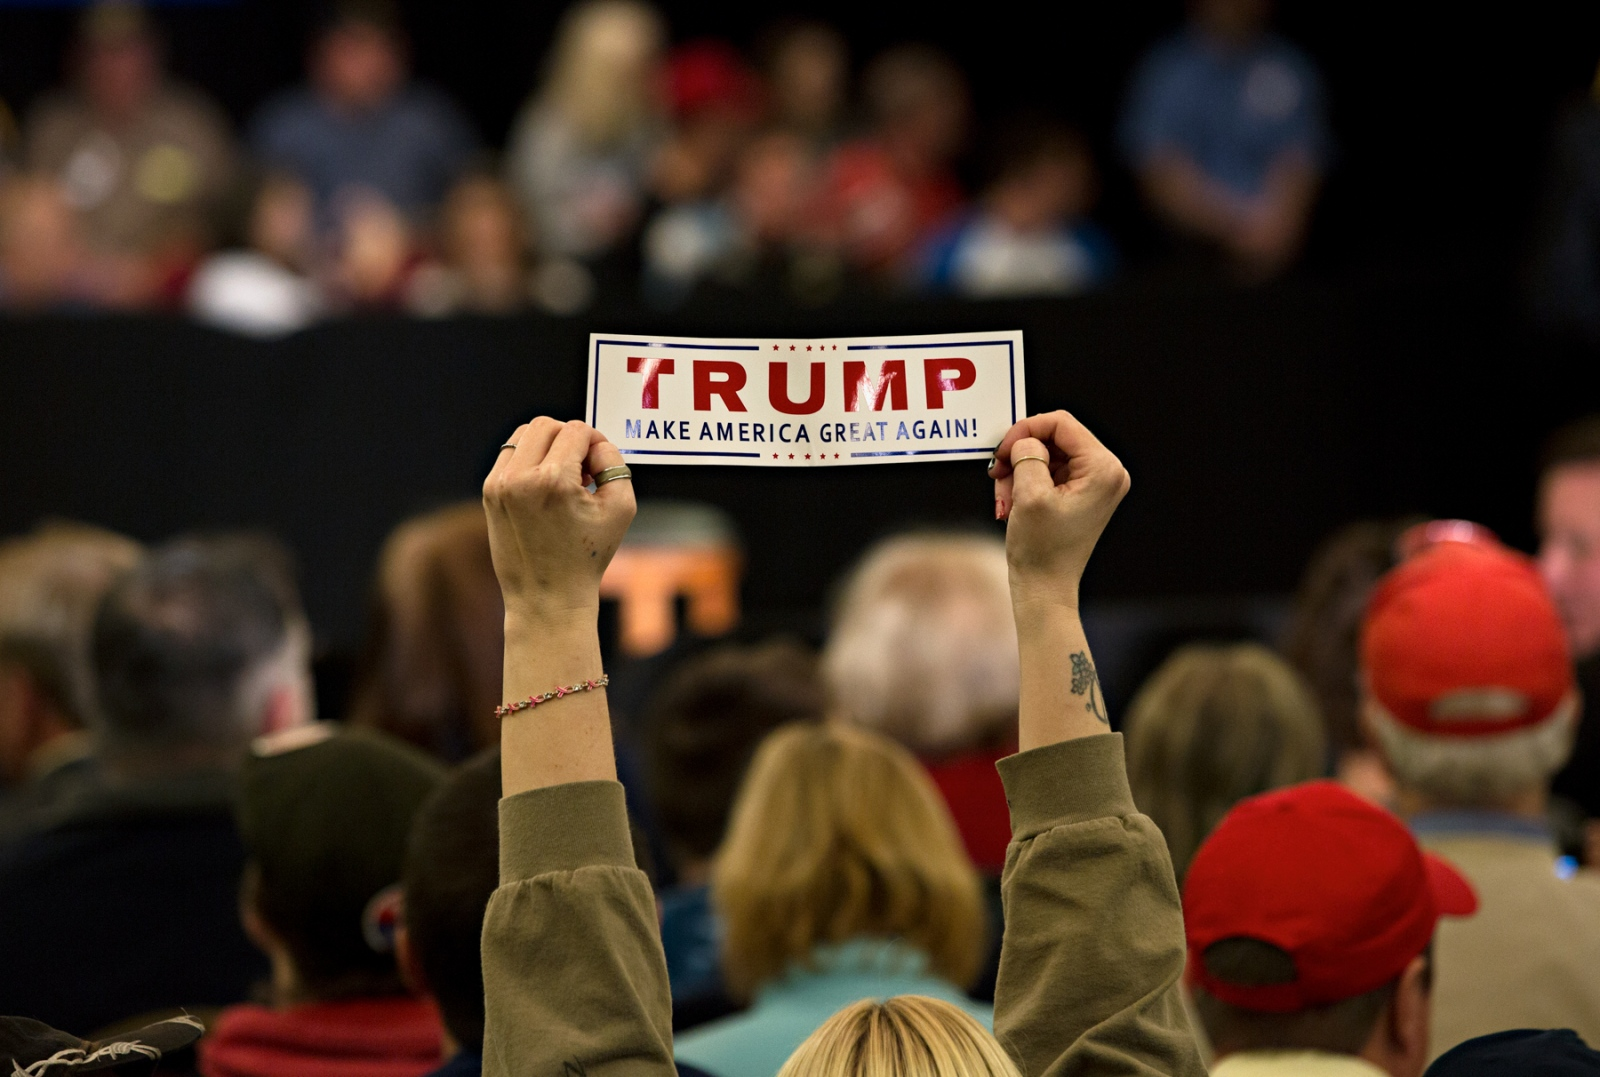 "March 30, 2016 - Appleton, Wisconsin - A supporter of Donald Trump brandishes a Trump bumper sticker during a rally in Appleton, Wisconsin. Trump asked his supporters to turn around and look at the ""lying media"" while he berated the media's coverage if his presidential run. He criticized the media for not interviewing his supporters and only covering negative news about him."